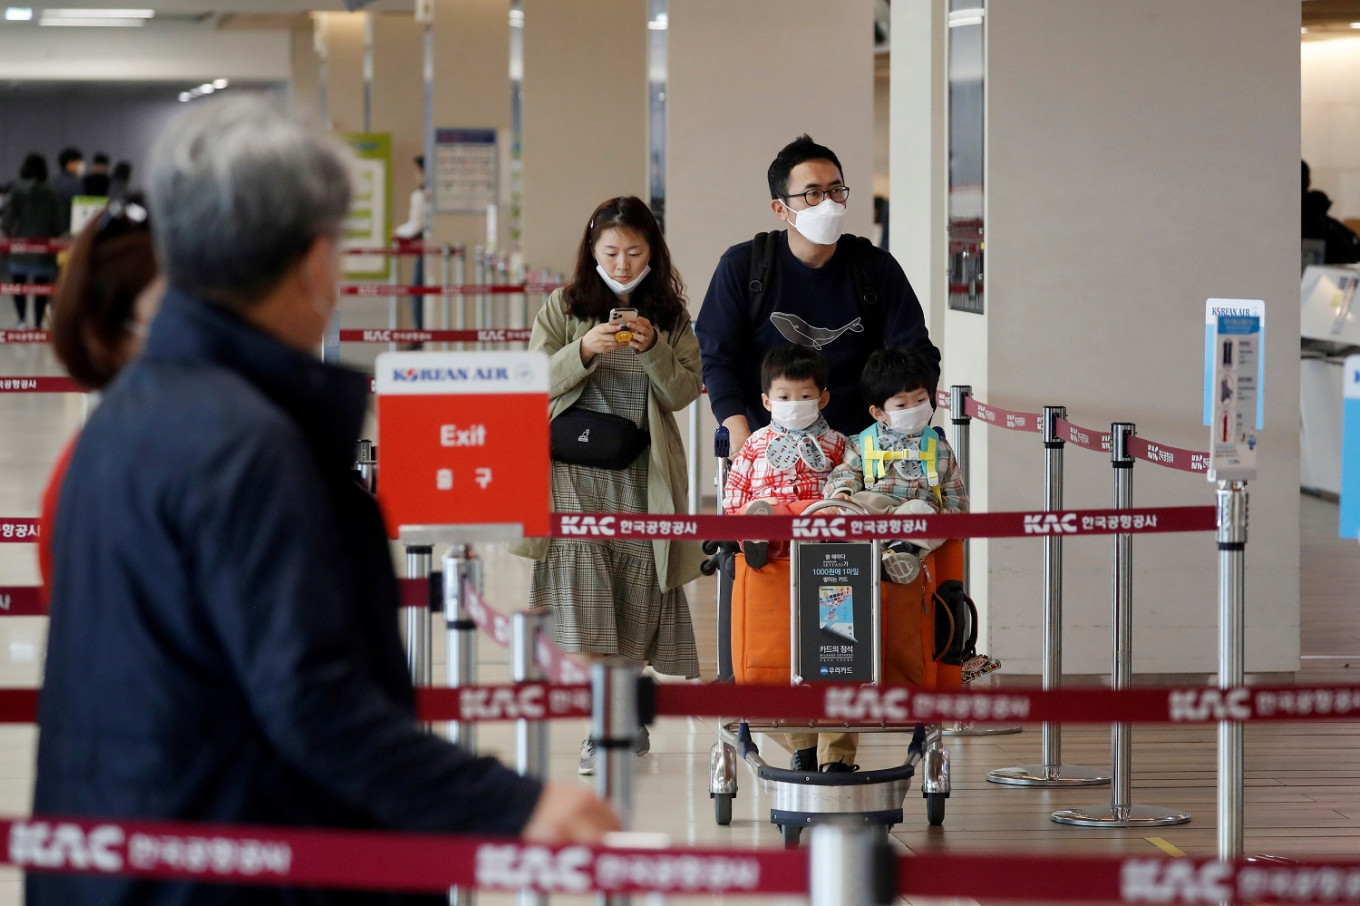 South Korea says long-term visa holders must have medical examinations before returning